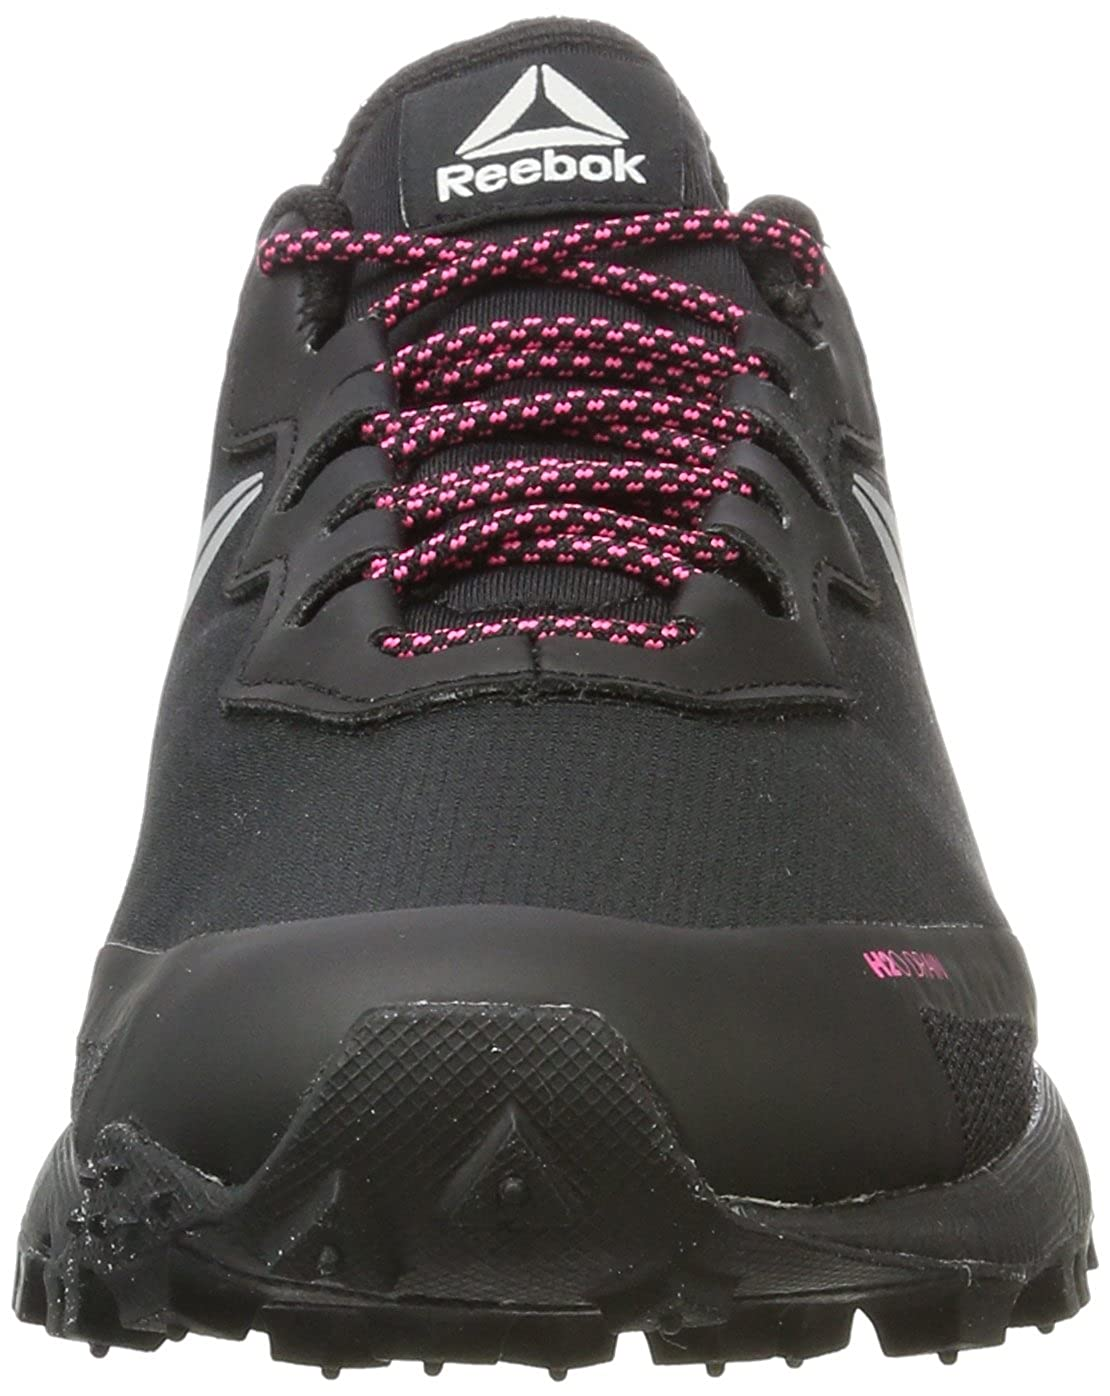 61a63f65017 Reebok Women s All All Terrain Craze Trail Running Shoes  Amazon.co.uk   Shoes   Bags